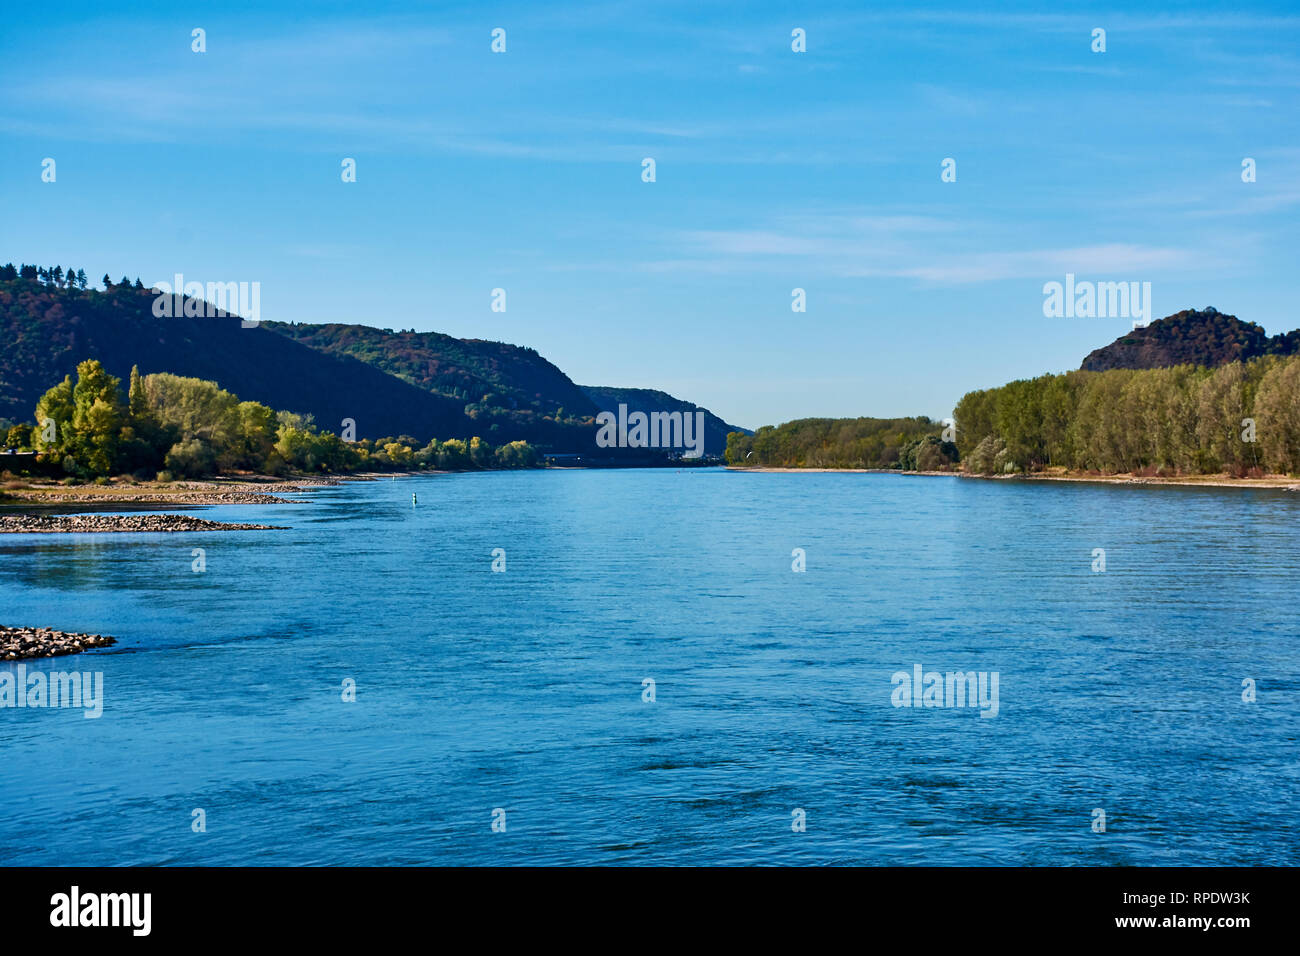 view to the river rhine and the landscape on a sunny day in Andernach, Germany - Stock Image